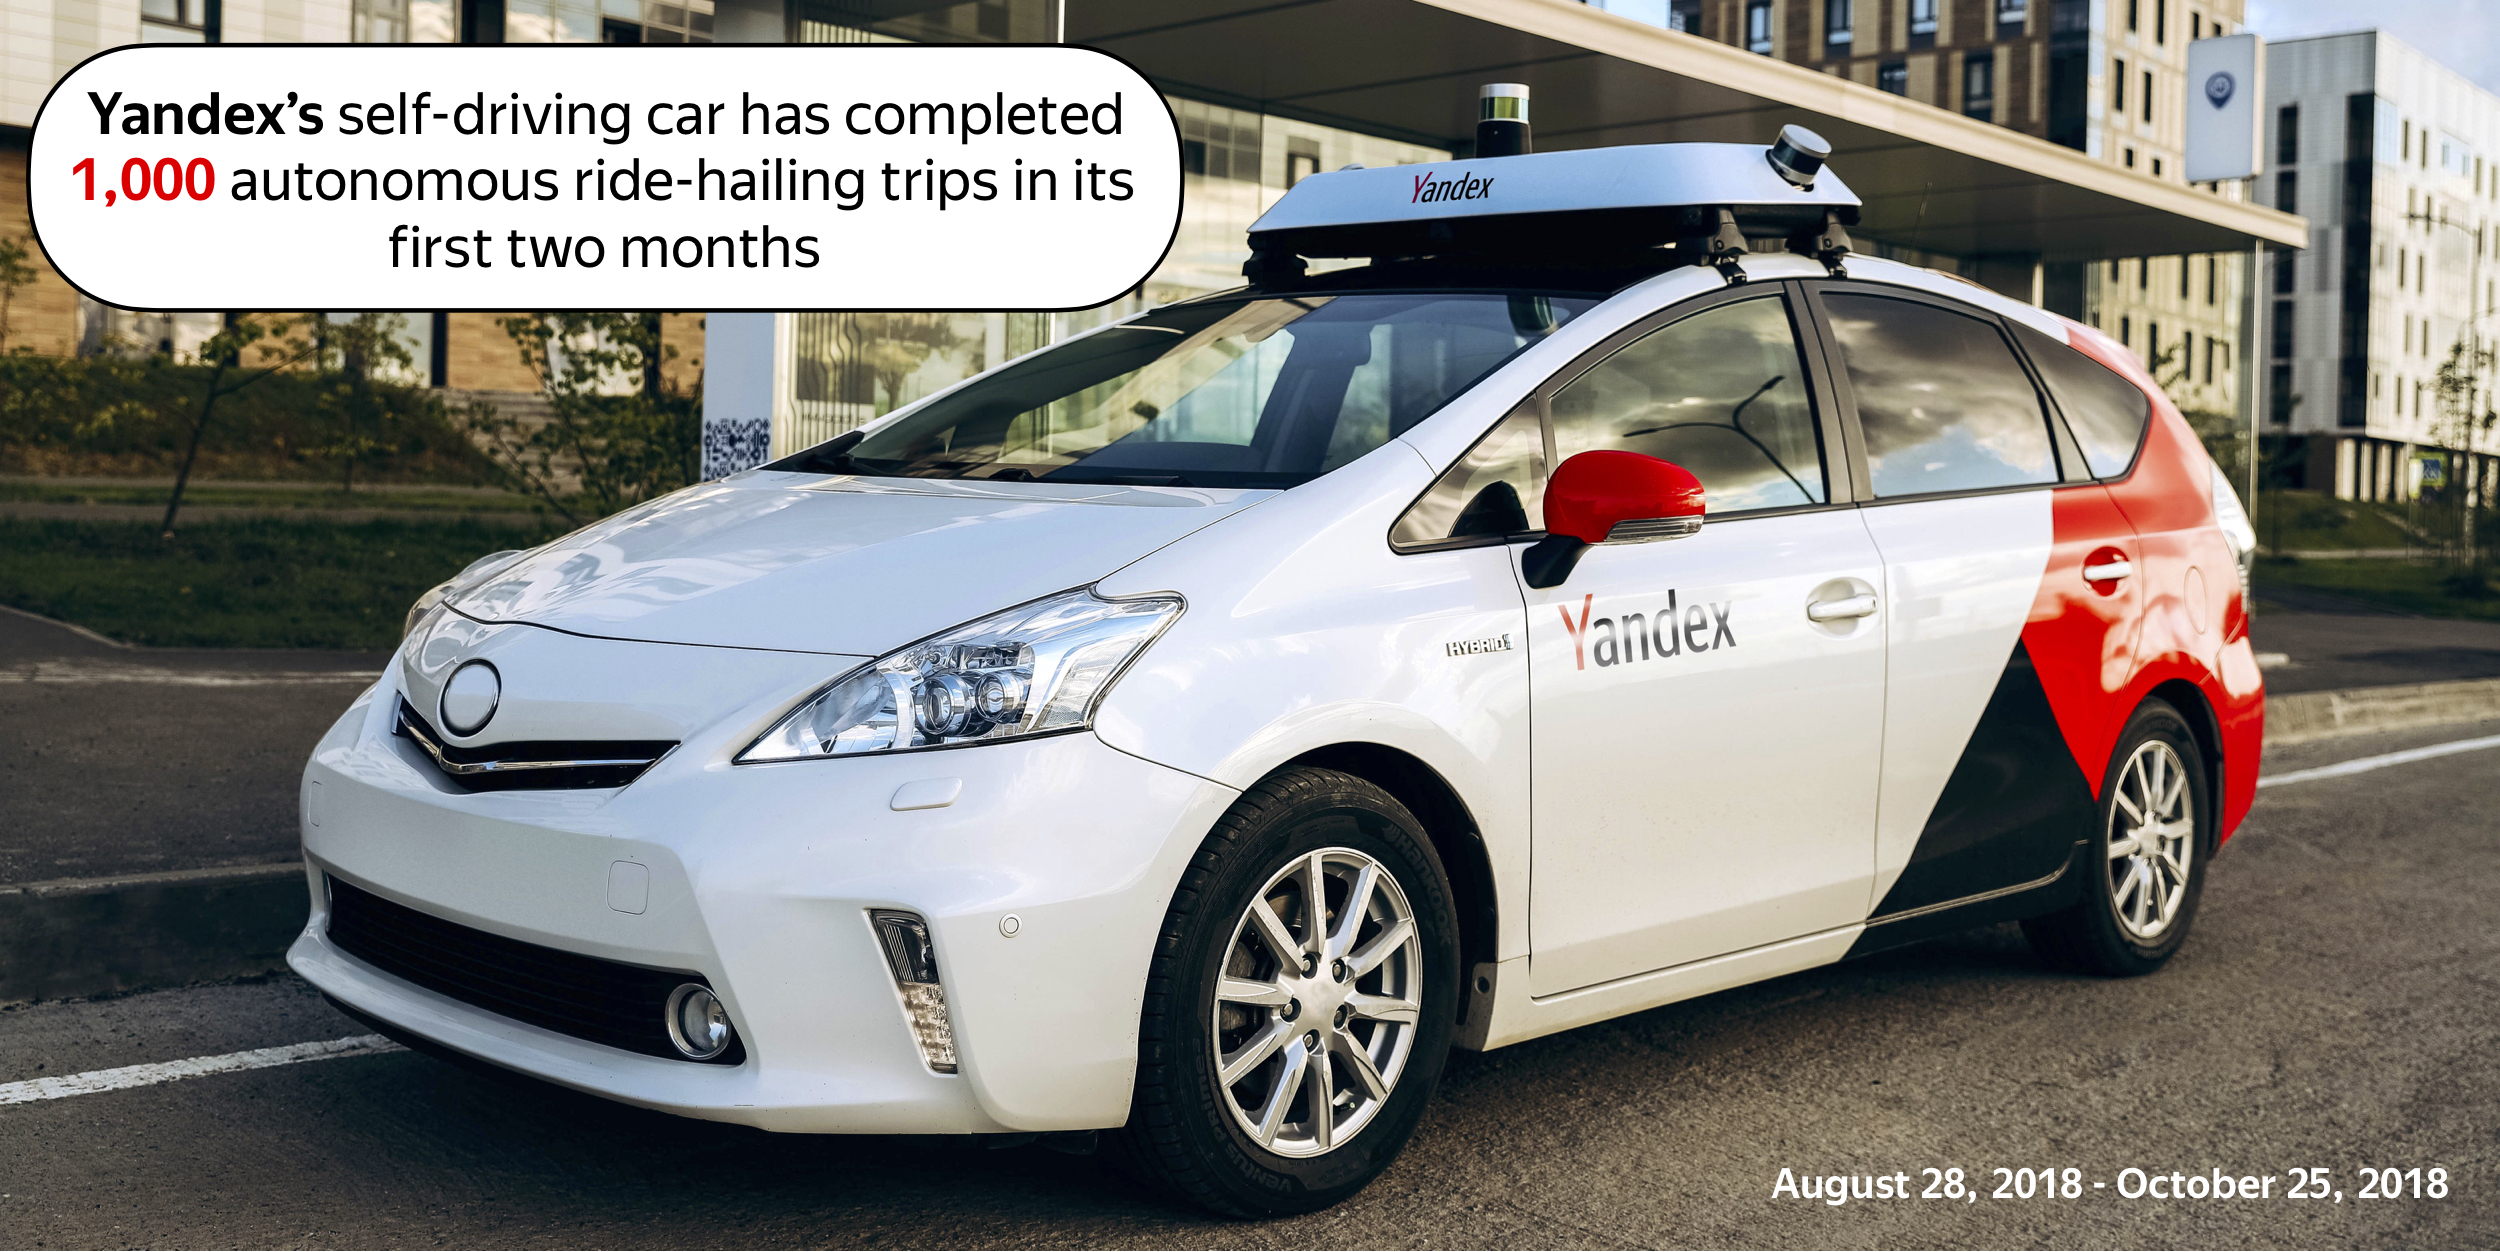 Yandex — Company blog — Yandex's Self-Driving Car Completes